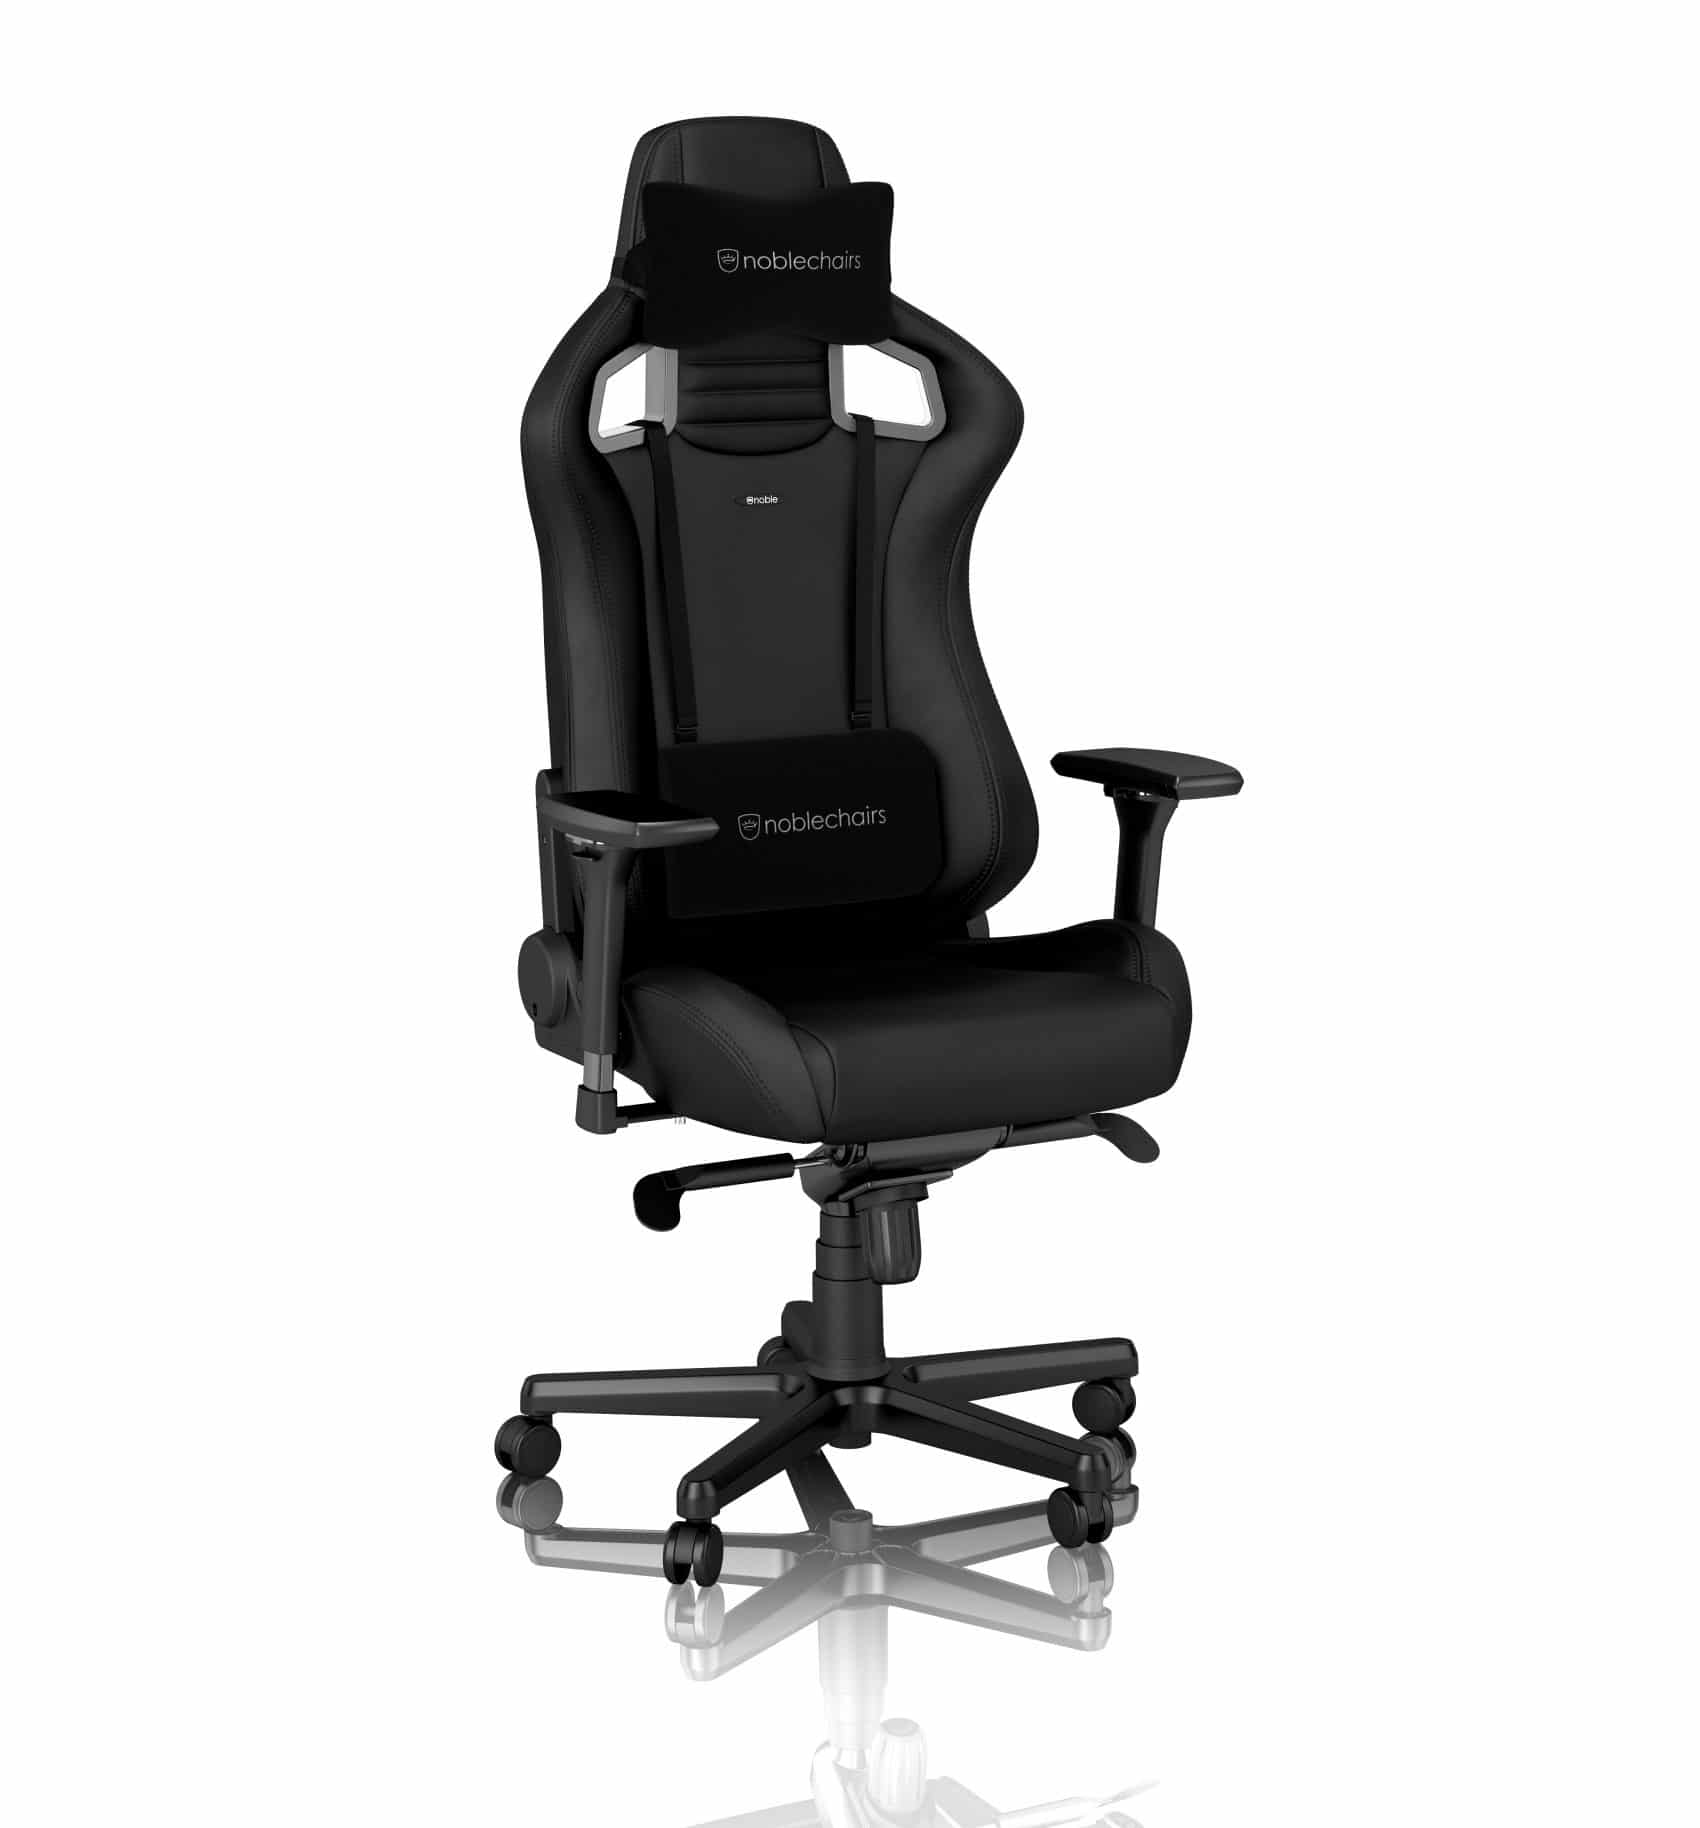 noblechairs Black Edition EPIC